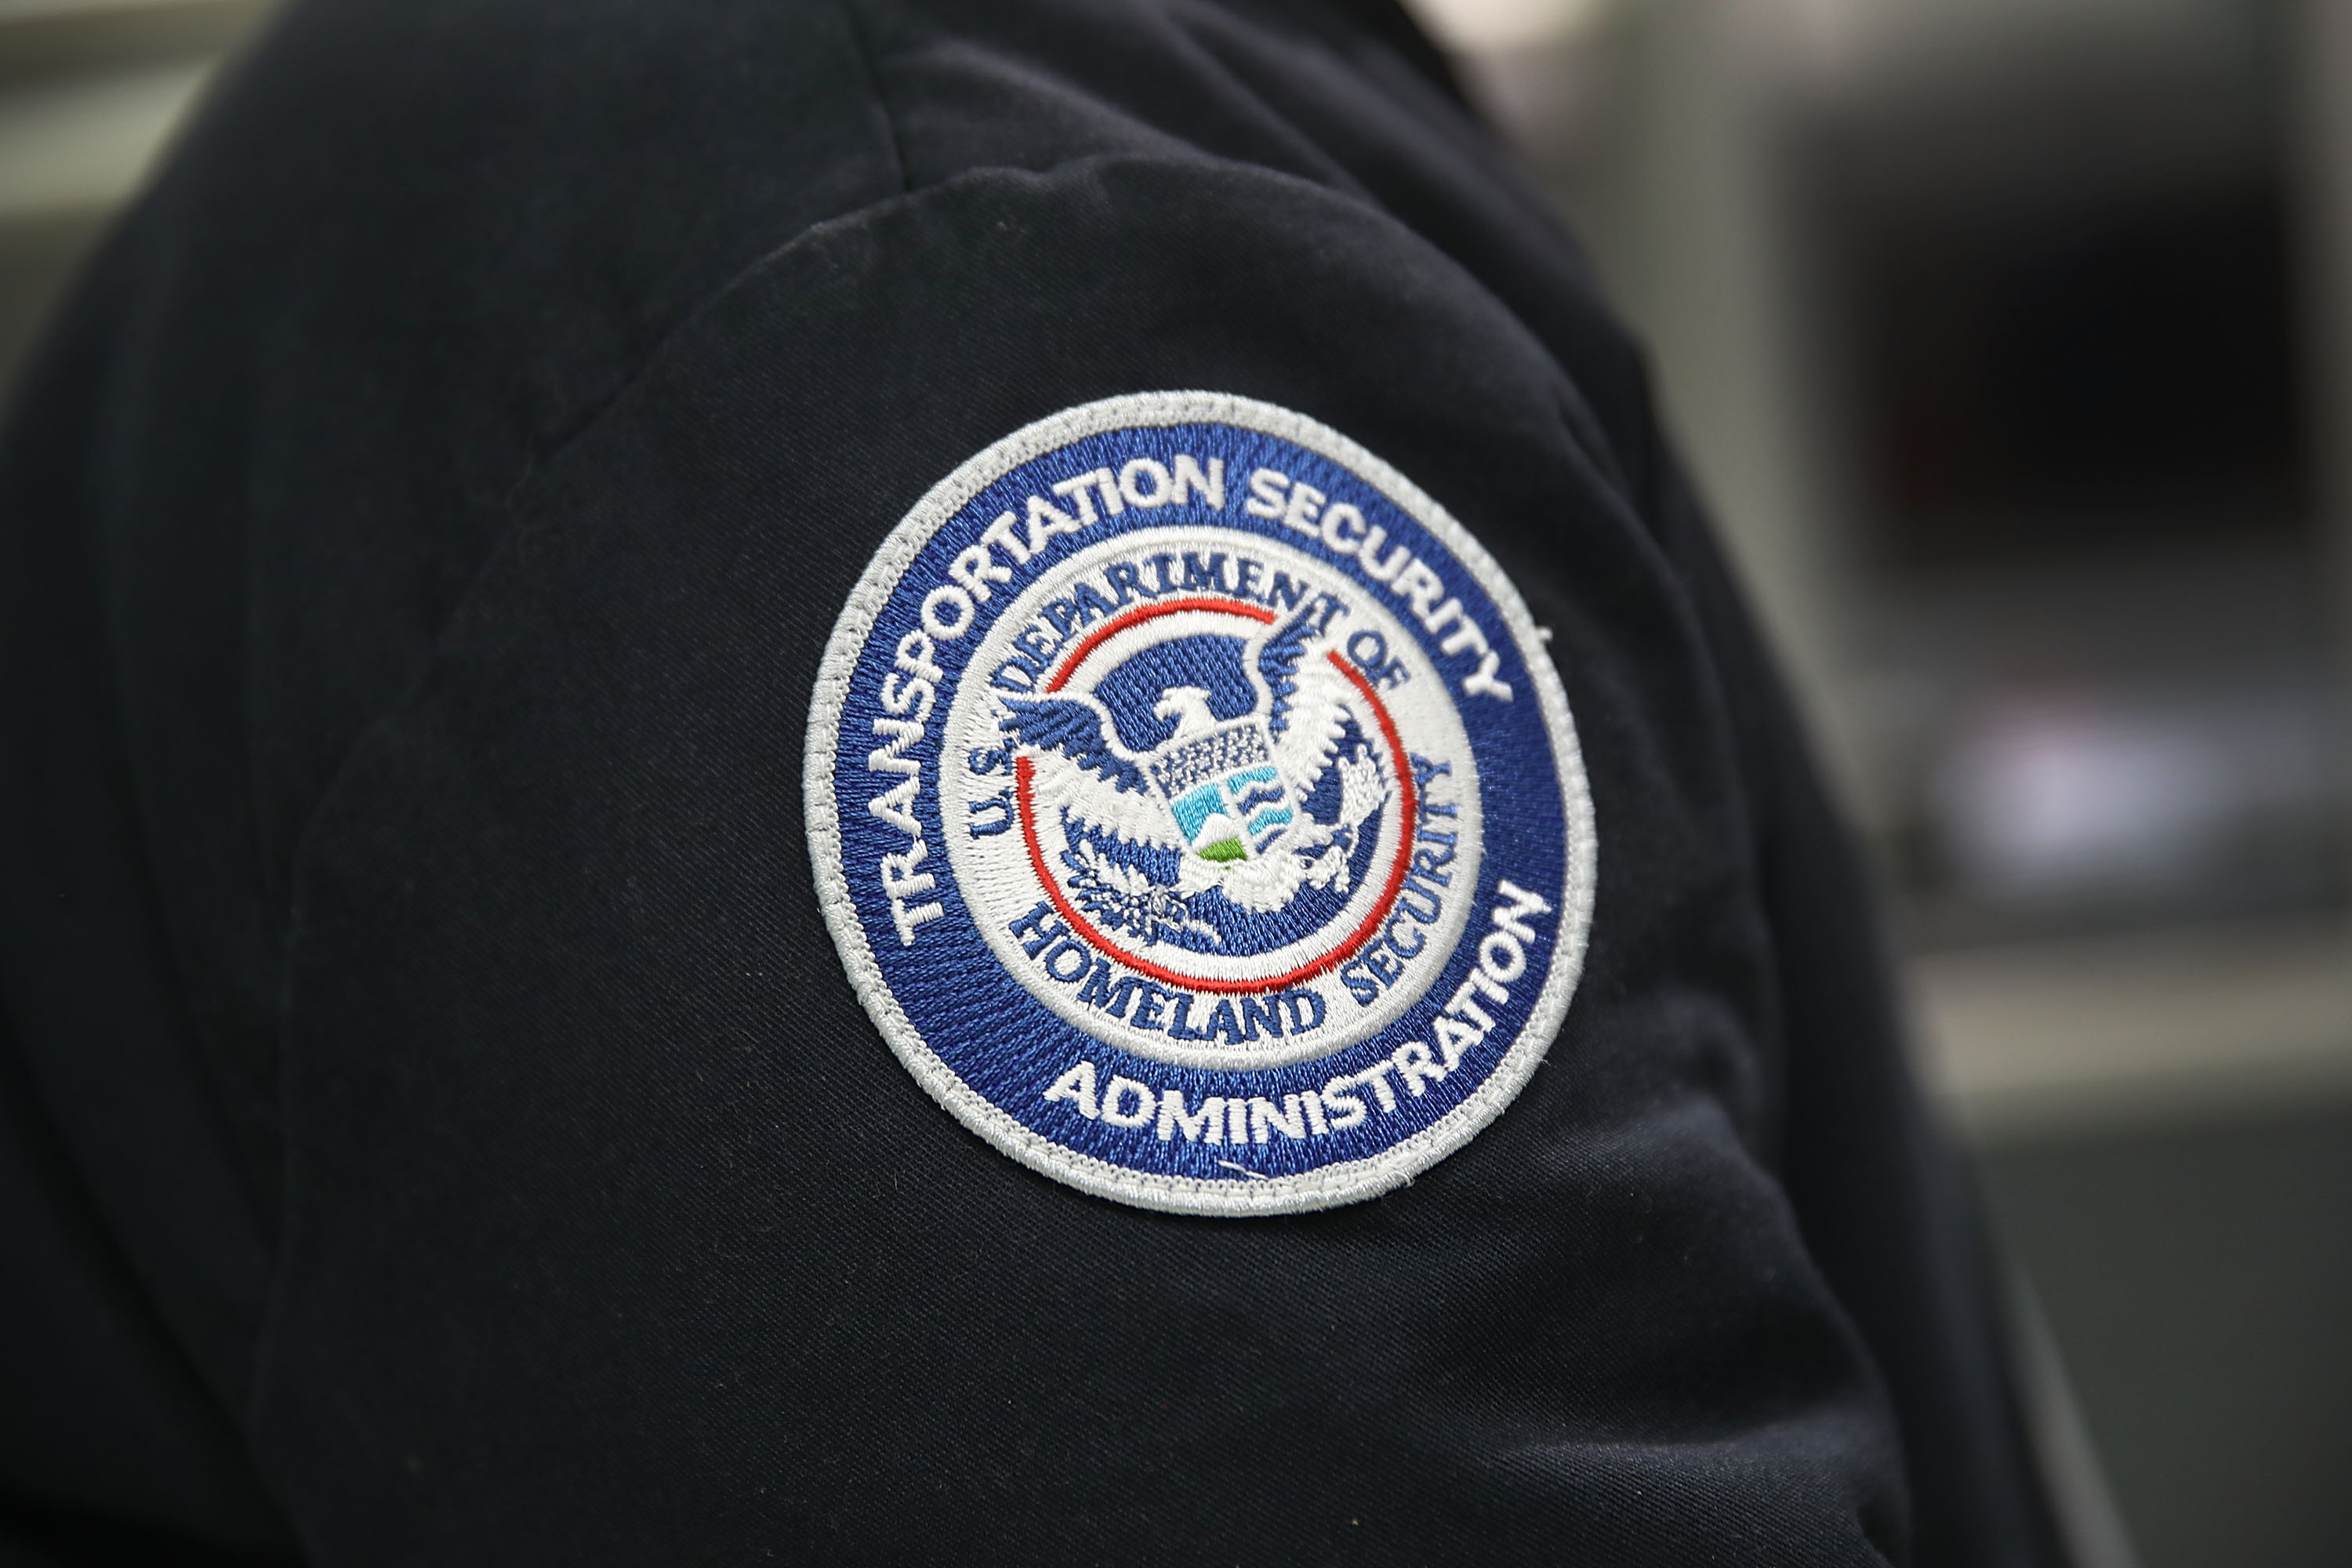 TSA Real ID: what passengers need to know - Vox